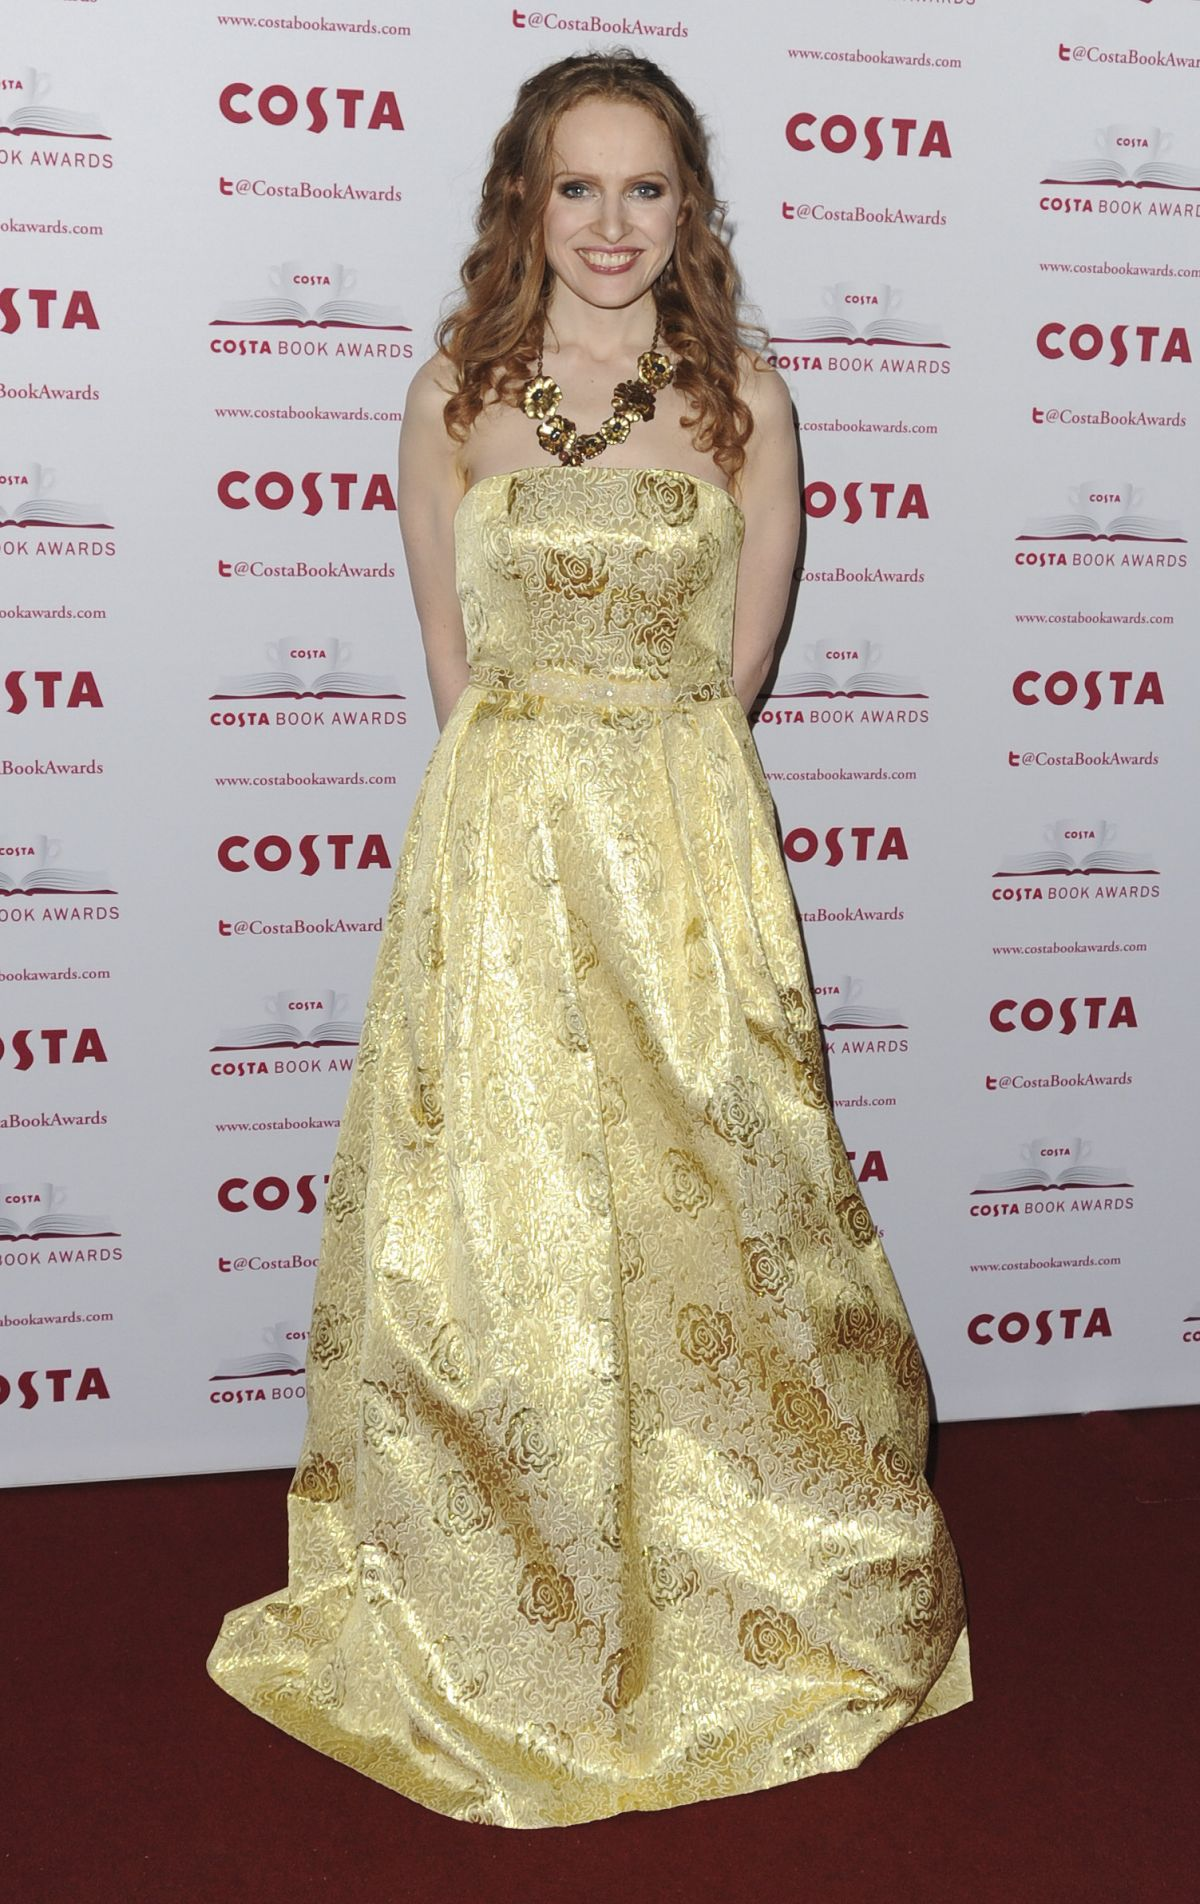 KATE WILLIAMS at Costa Book Awards in London 01/31/2017